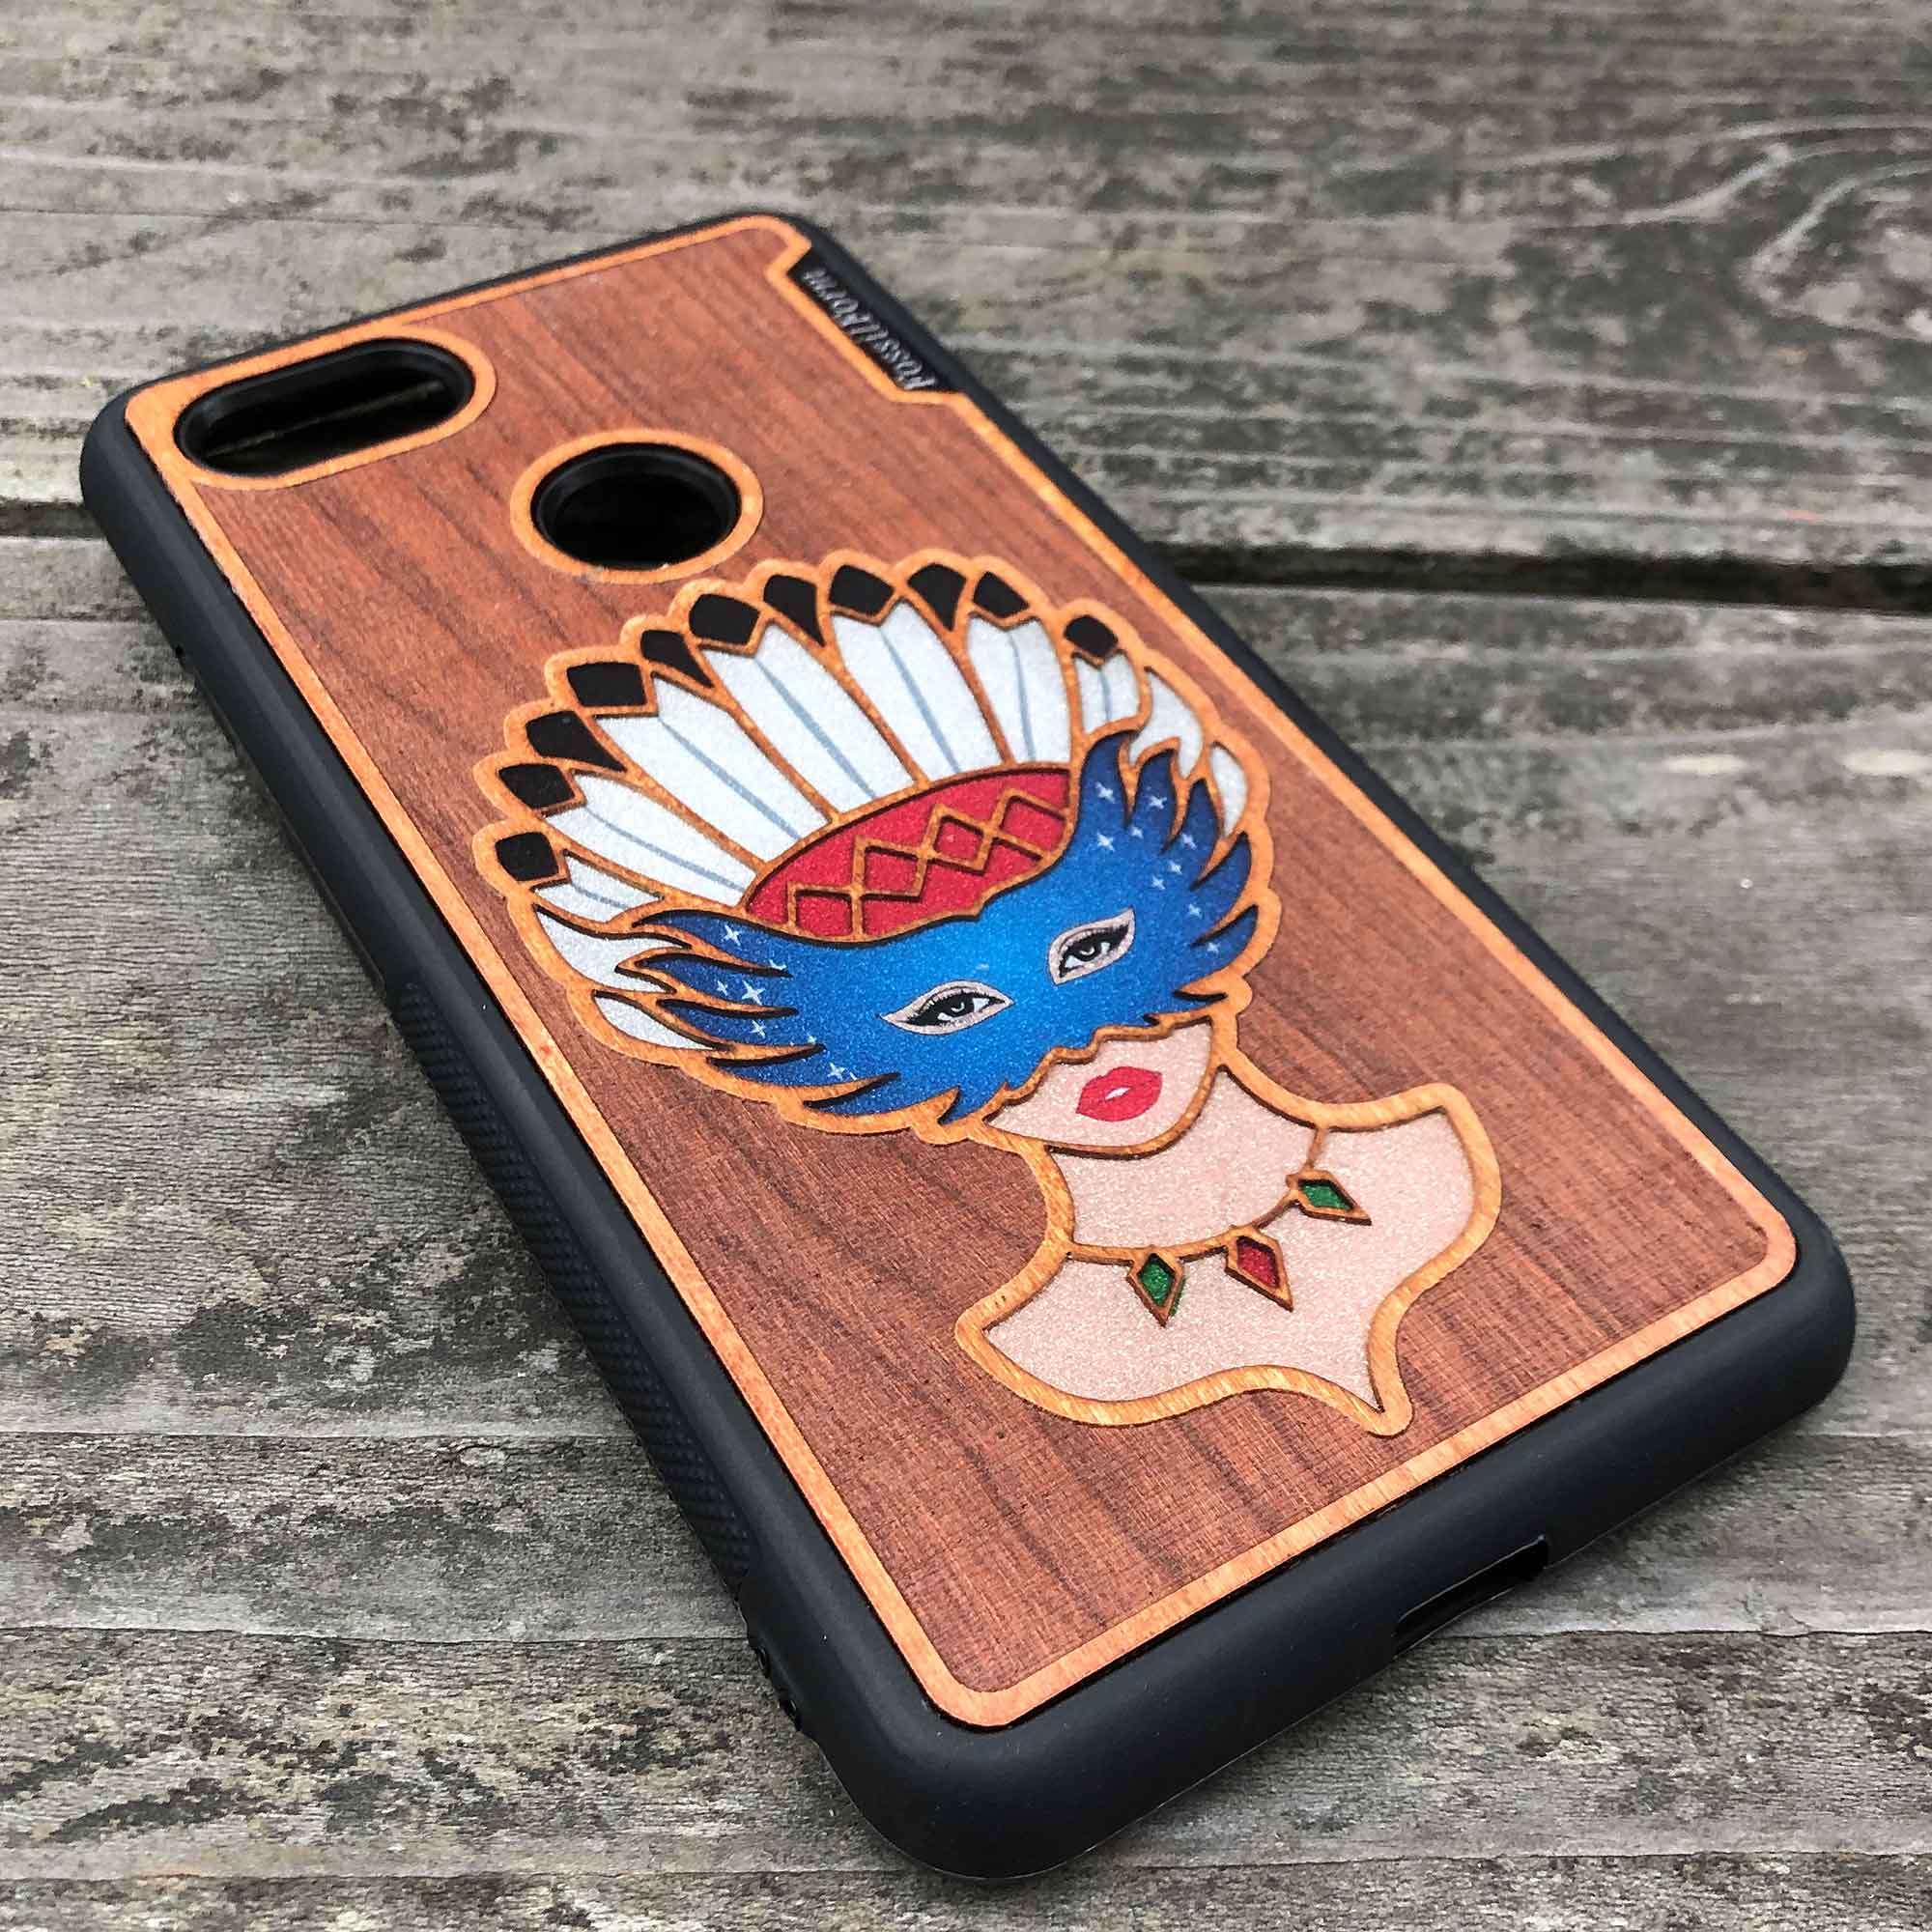 Girl With Native American Feather Headdress - Engraved Wood & Resin Case - Black